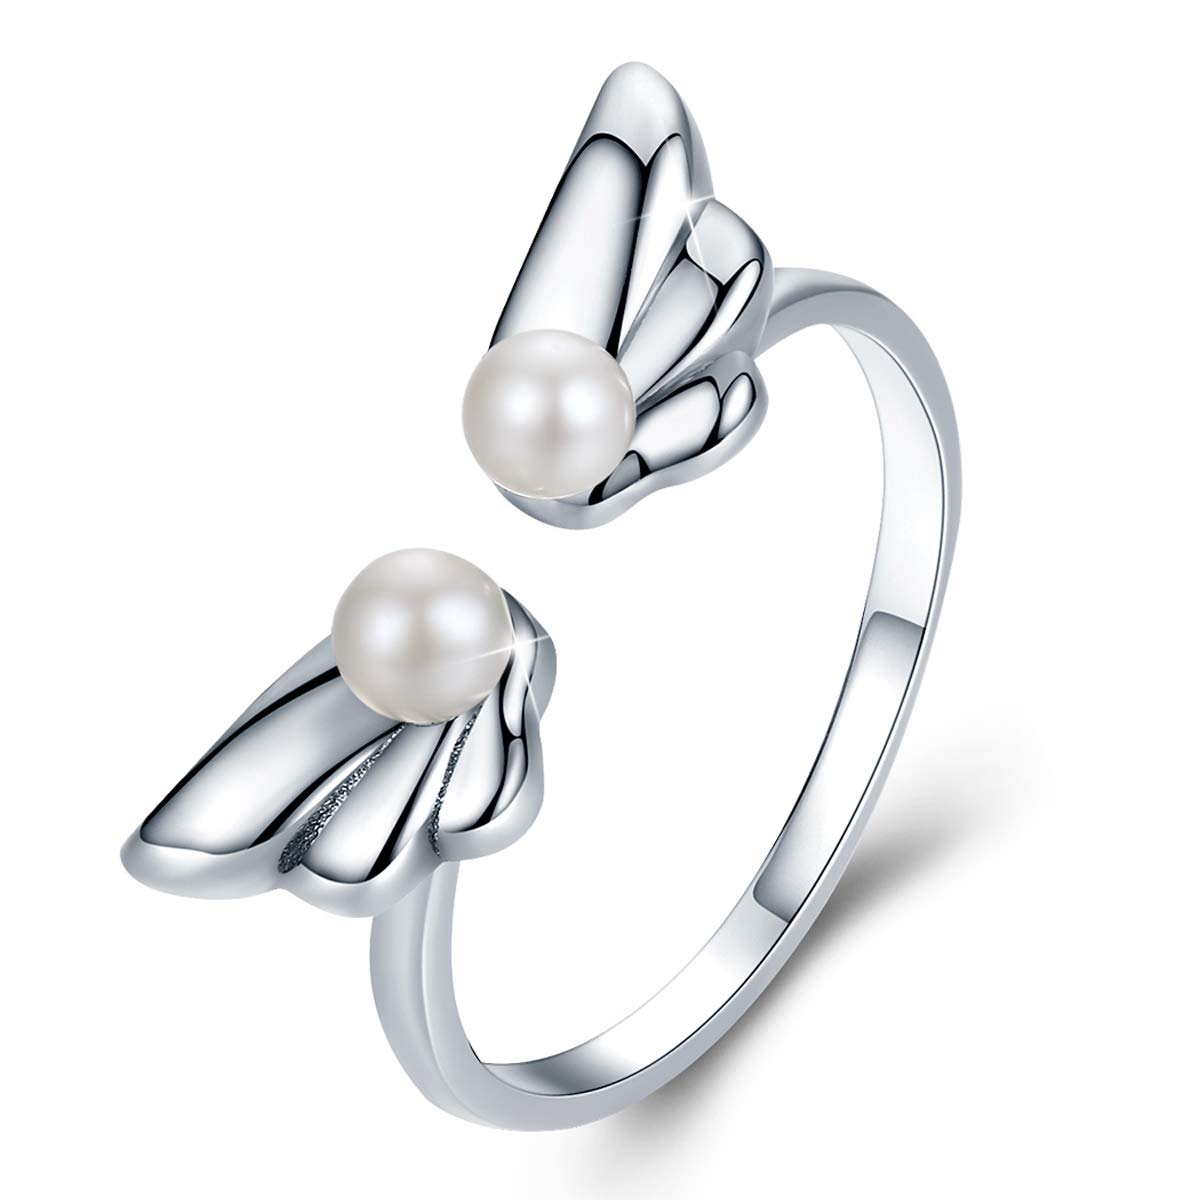 FOREVER QUEEN Cat Ring, 925 Sterling Silver Cute Kitty Sticky Cat Ring with Long Tail Opening Mouth Ring, Simple Wedding Finger Ring for Women Girls BJ09061